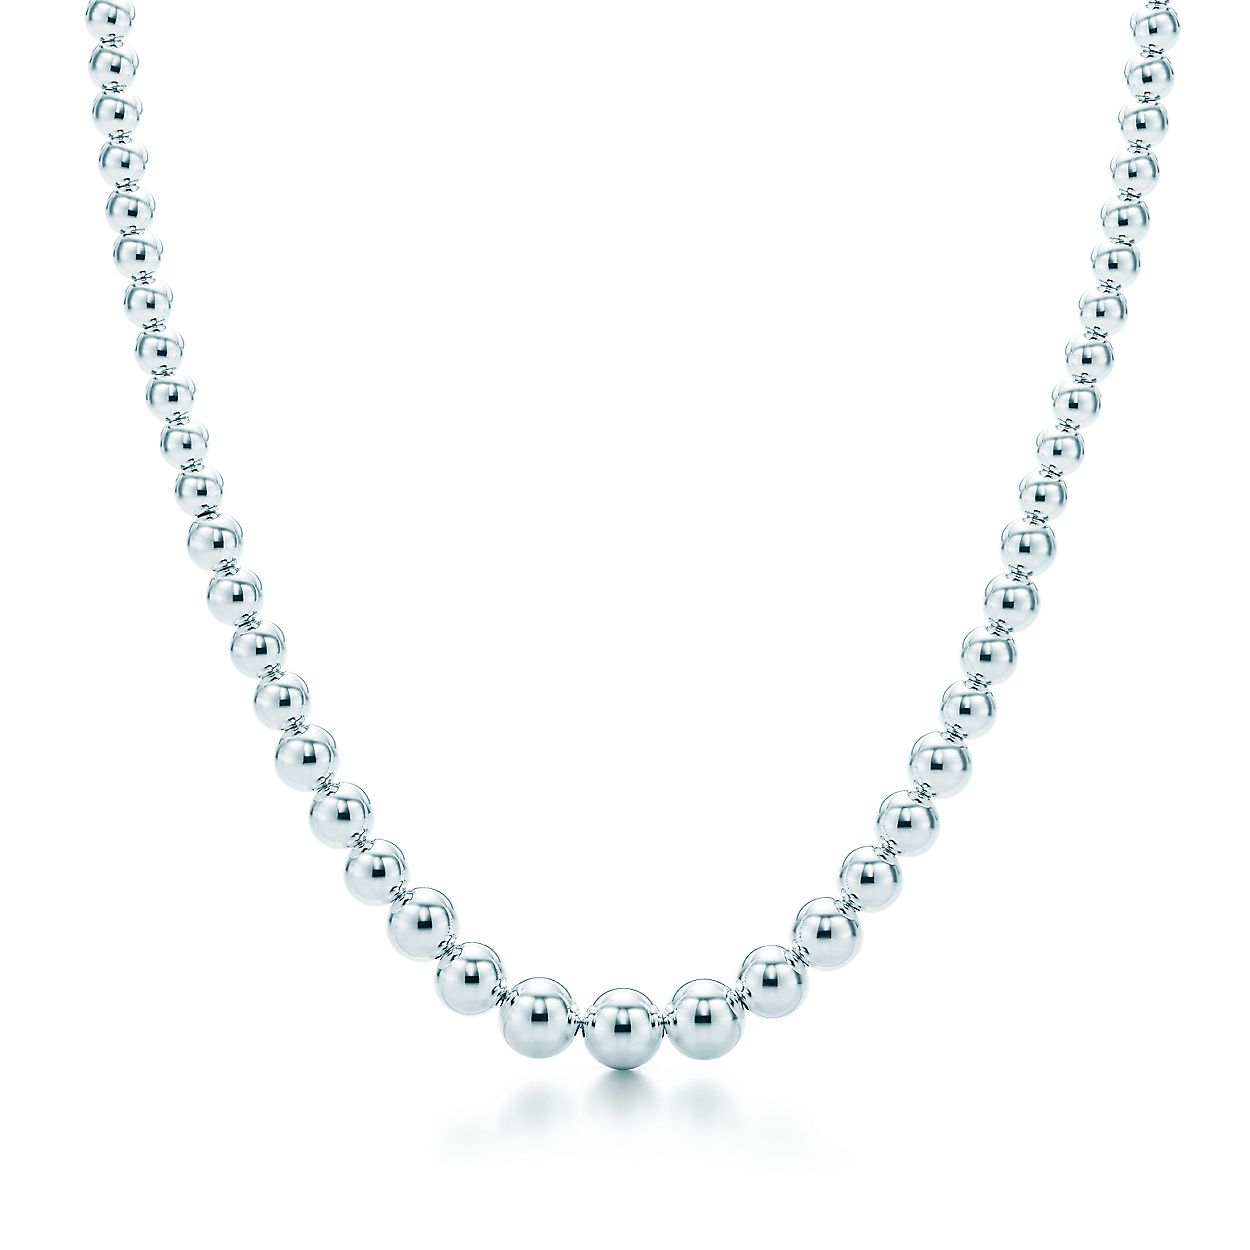 e4c2318fe Tiffany HardWear graduated ball necklace in sterling silver ...